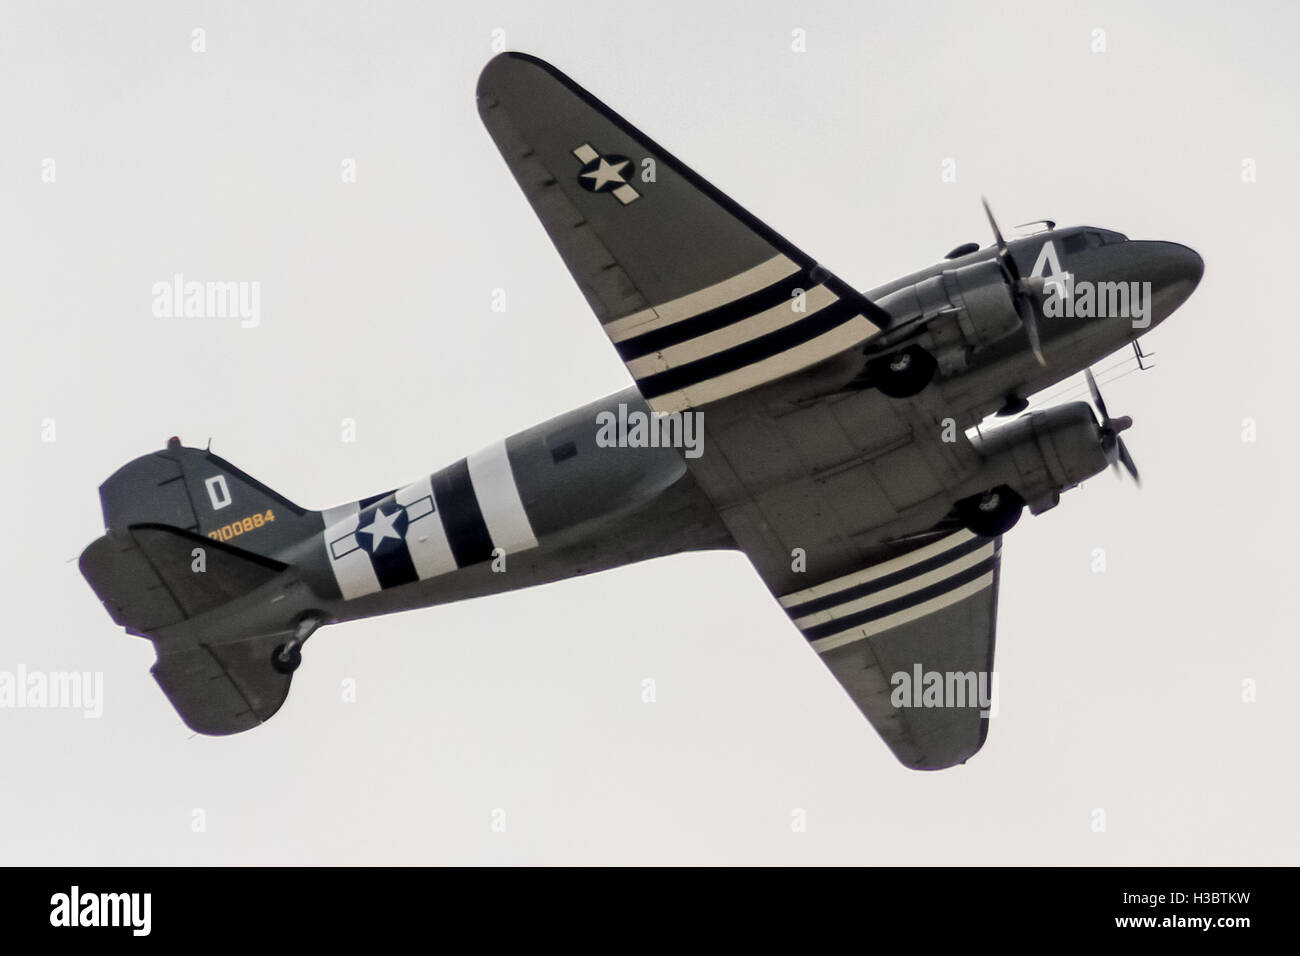 Douglas C-47 Skytrain or Dakota is a military transport aircraft developed from the civilian Douglas DC-3 airliner - Stock Image